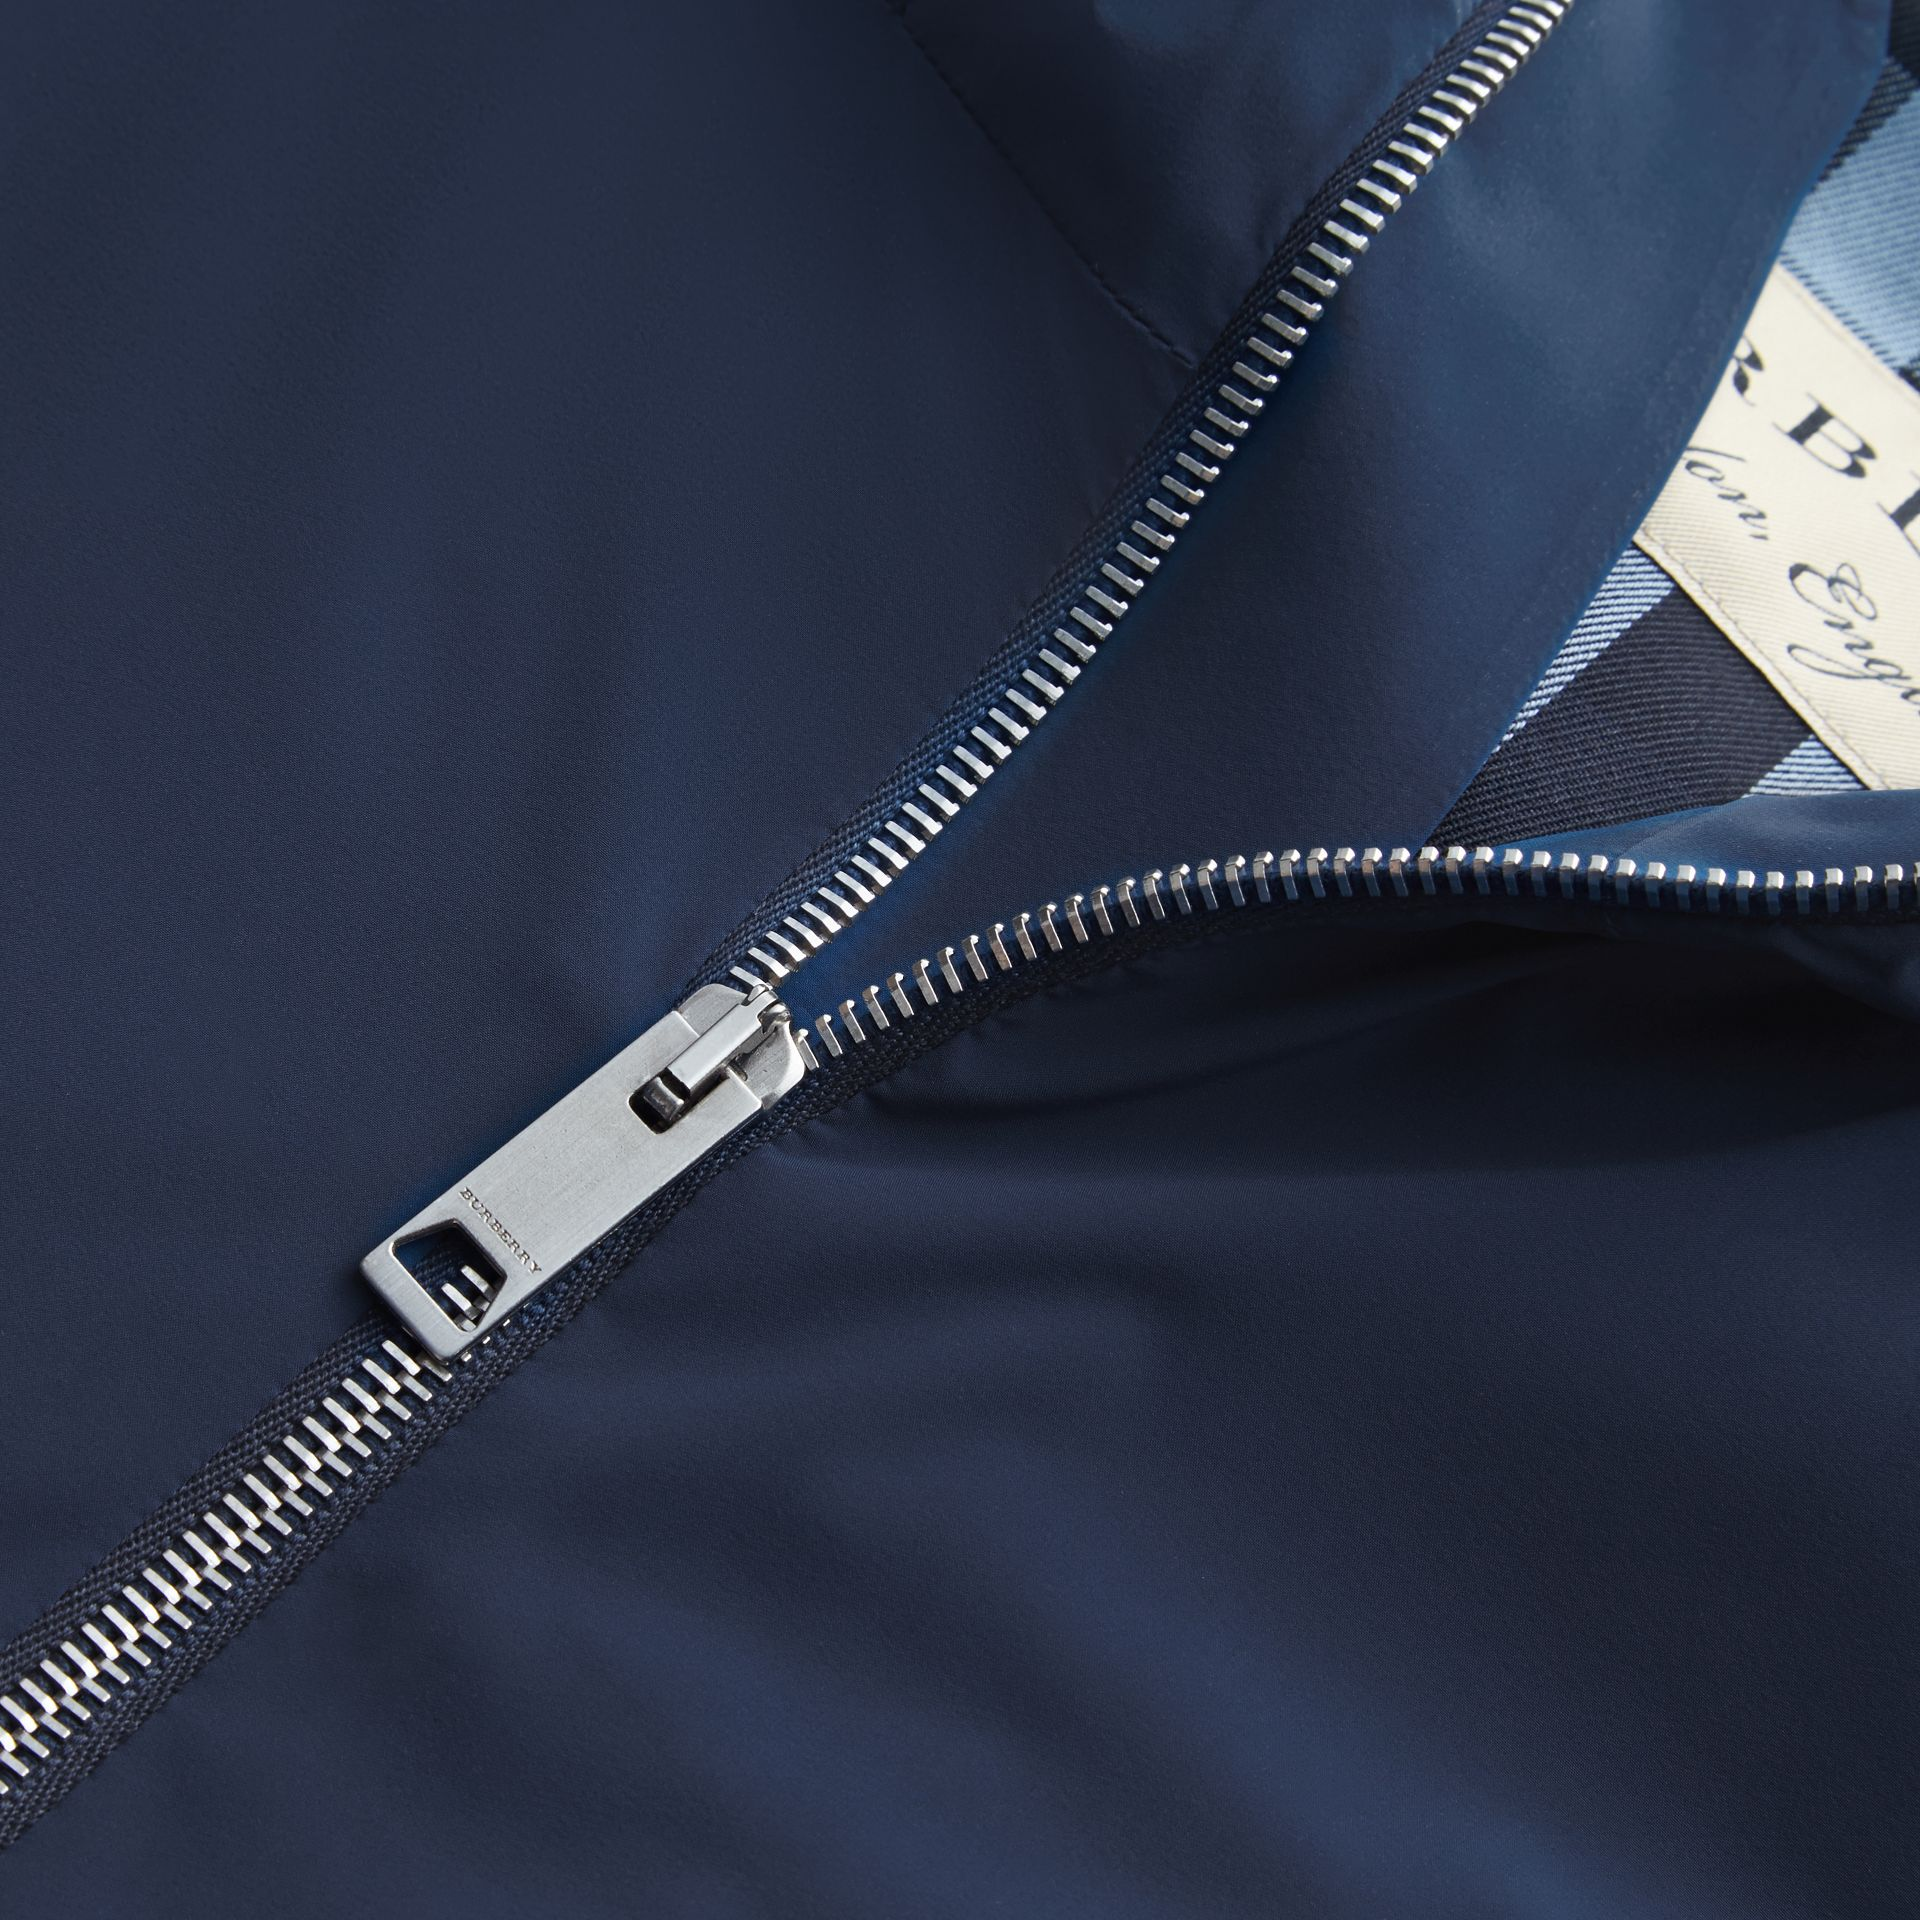 Seam-sealed Hooded Packaway Technical Jacket - gallery image 2